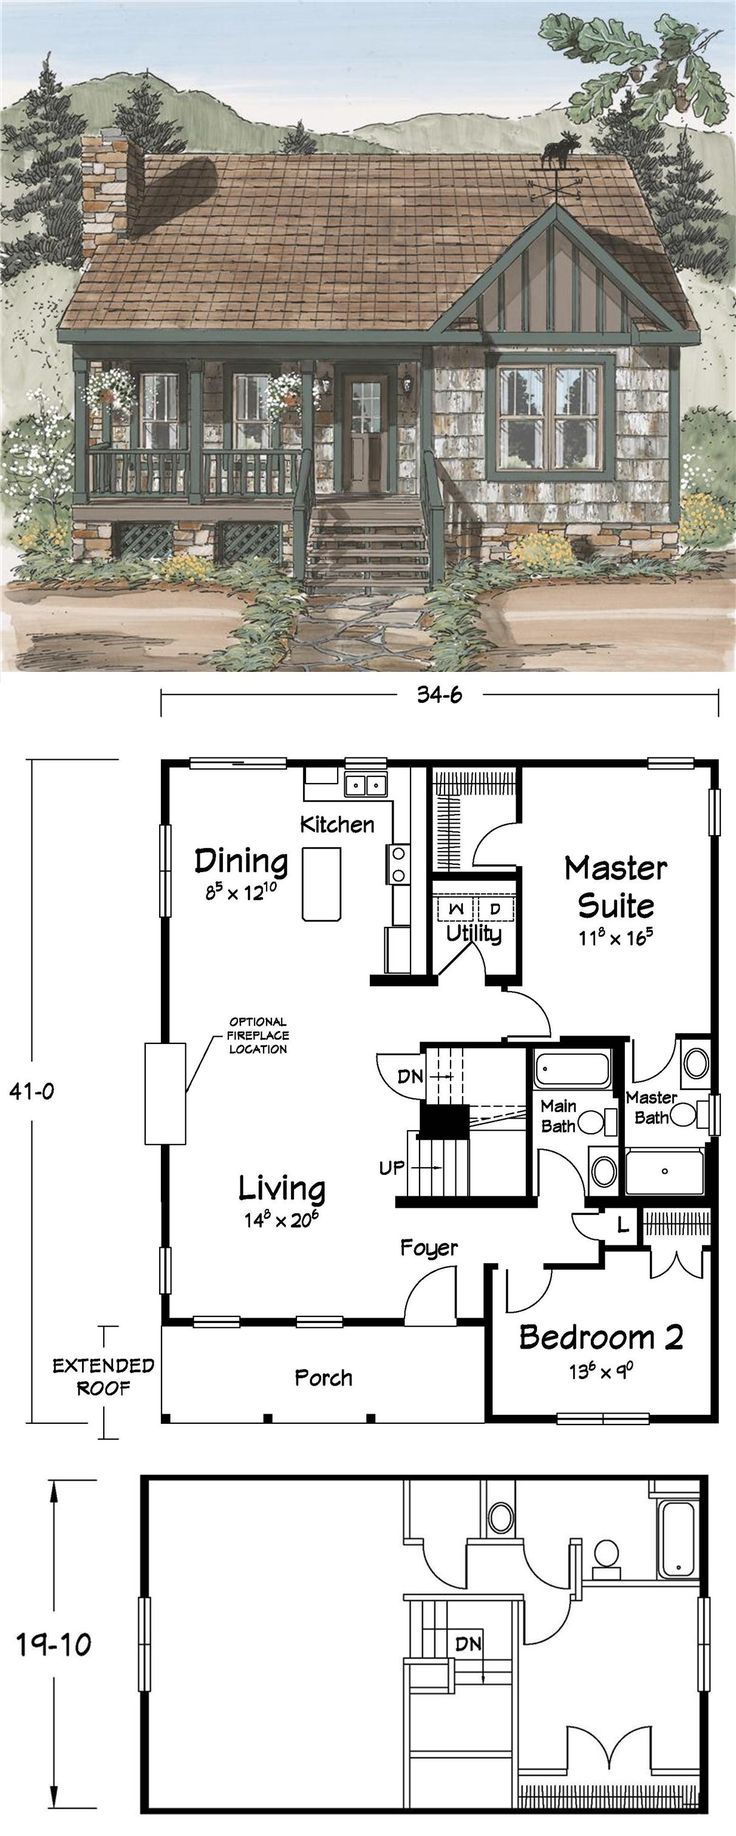 Cute floor plans tiny homes pinterest cabin small Small cabin plans